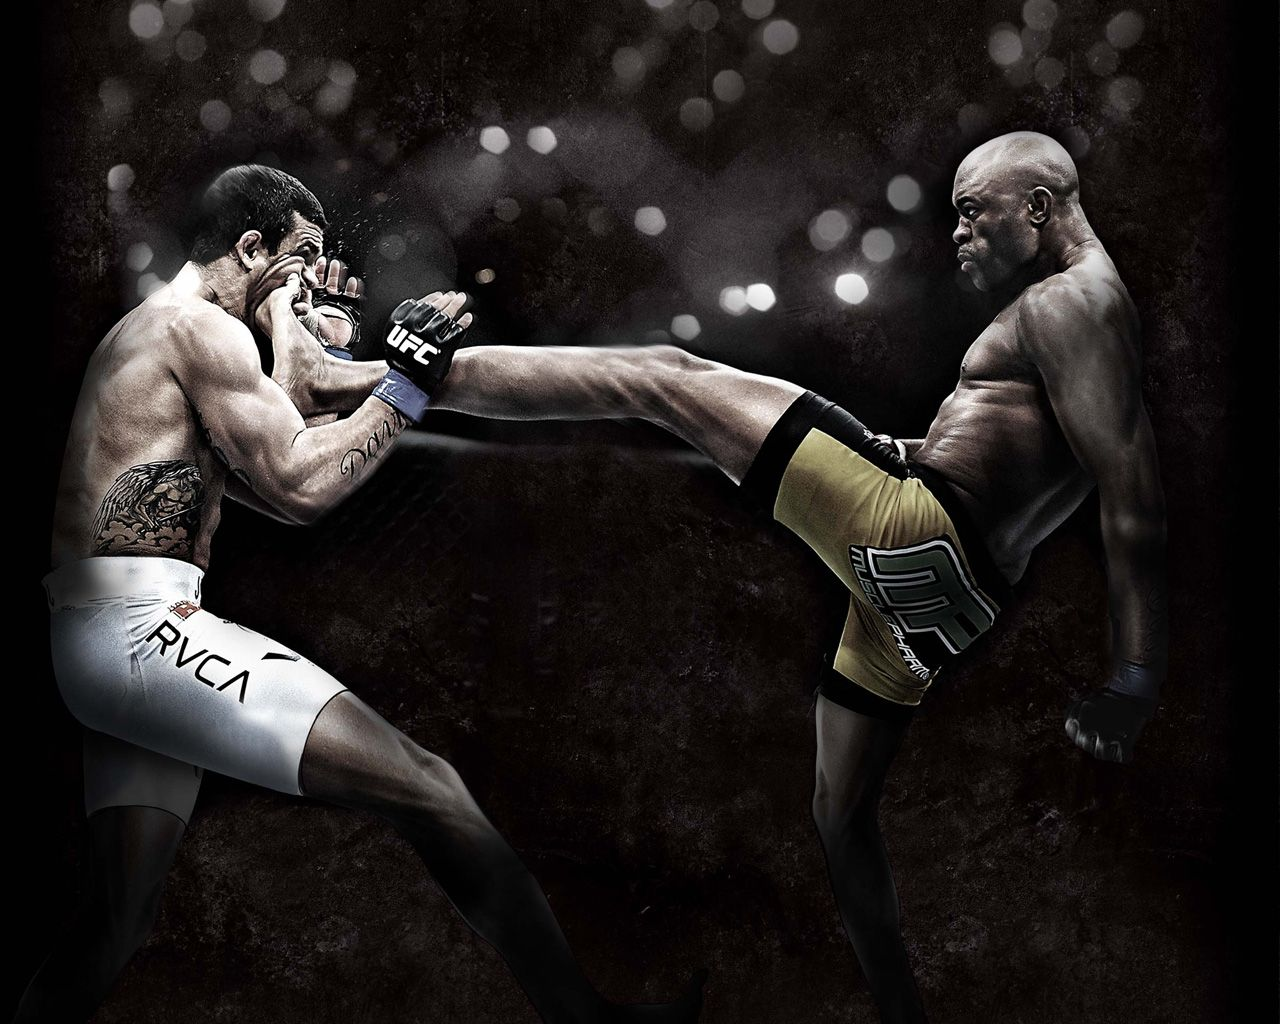 Ufc Wallpapers 1920 1200 Ufc Wallpaper 58 Wallpapers Adorable Wallpapers Martial Arts Ufc Fighters Mma